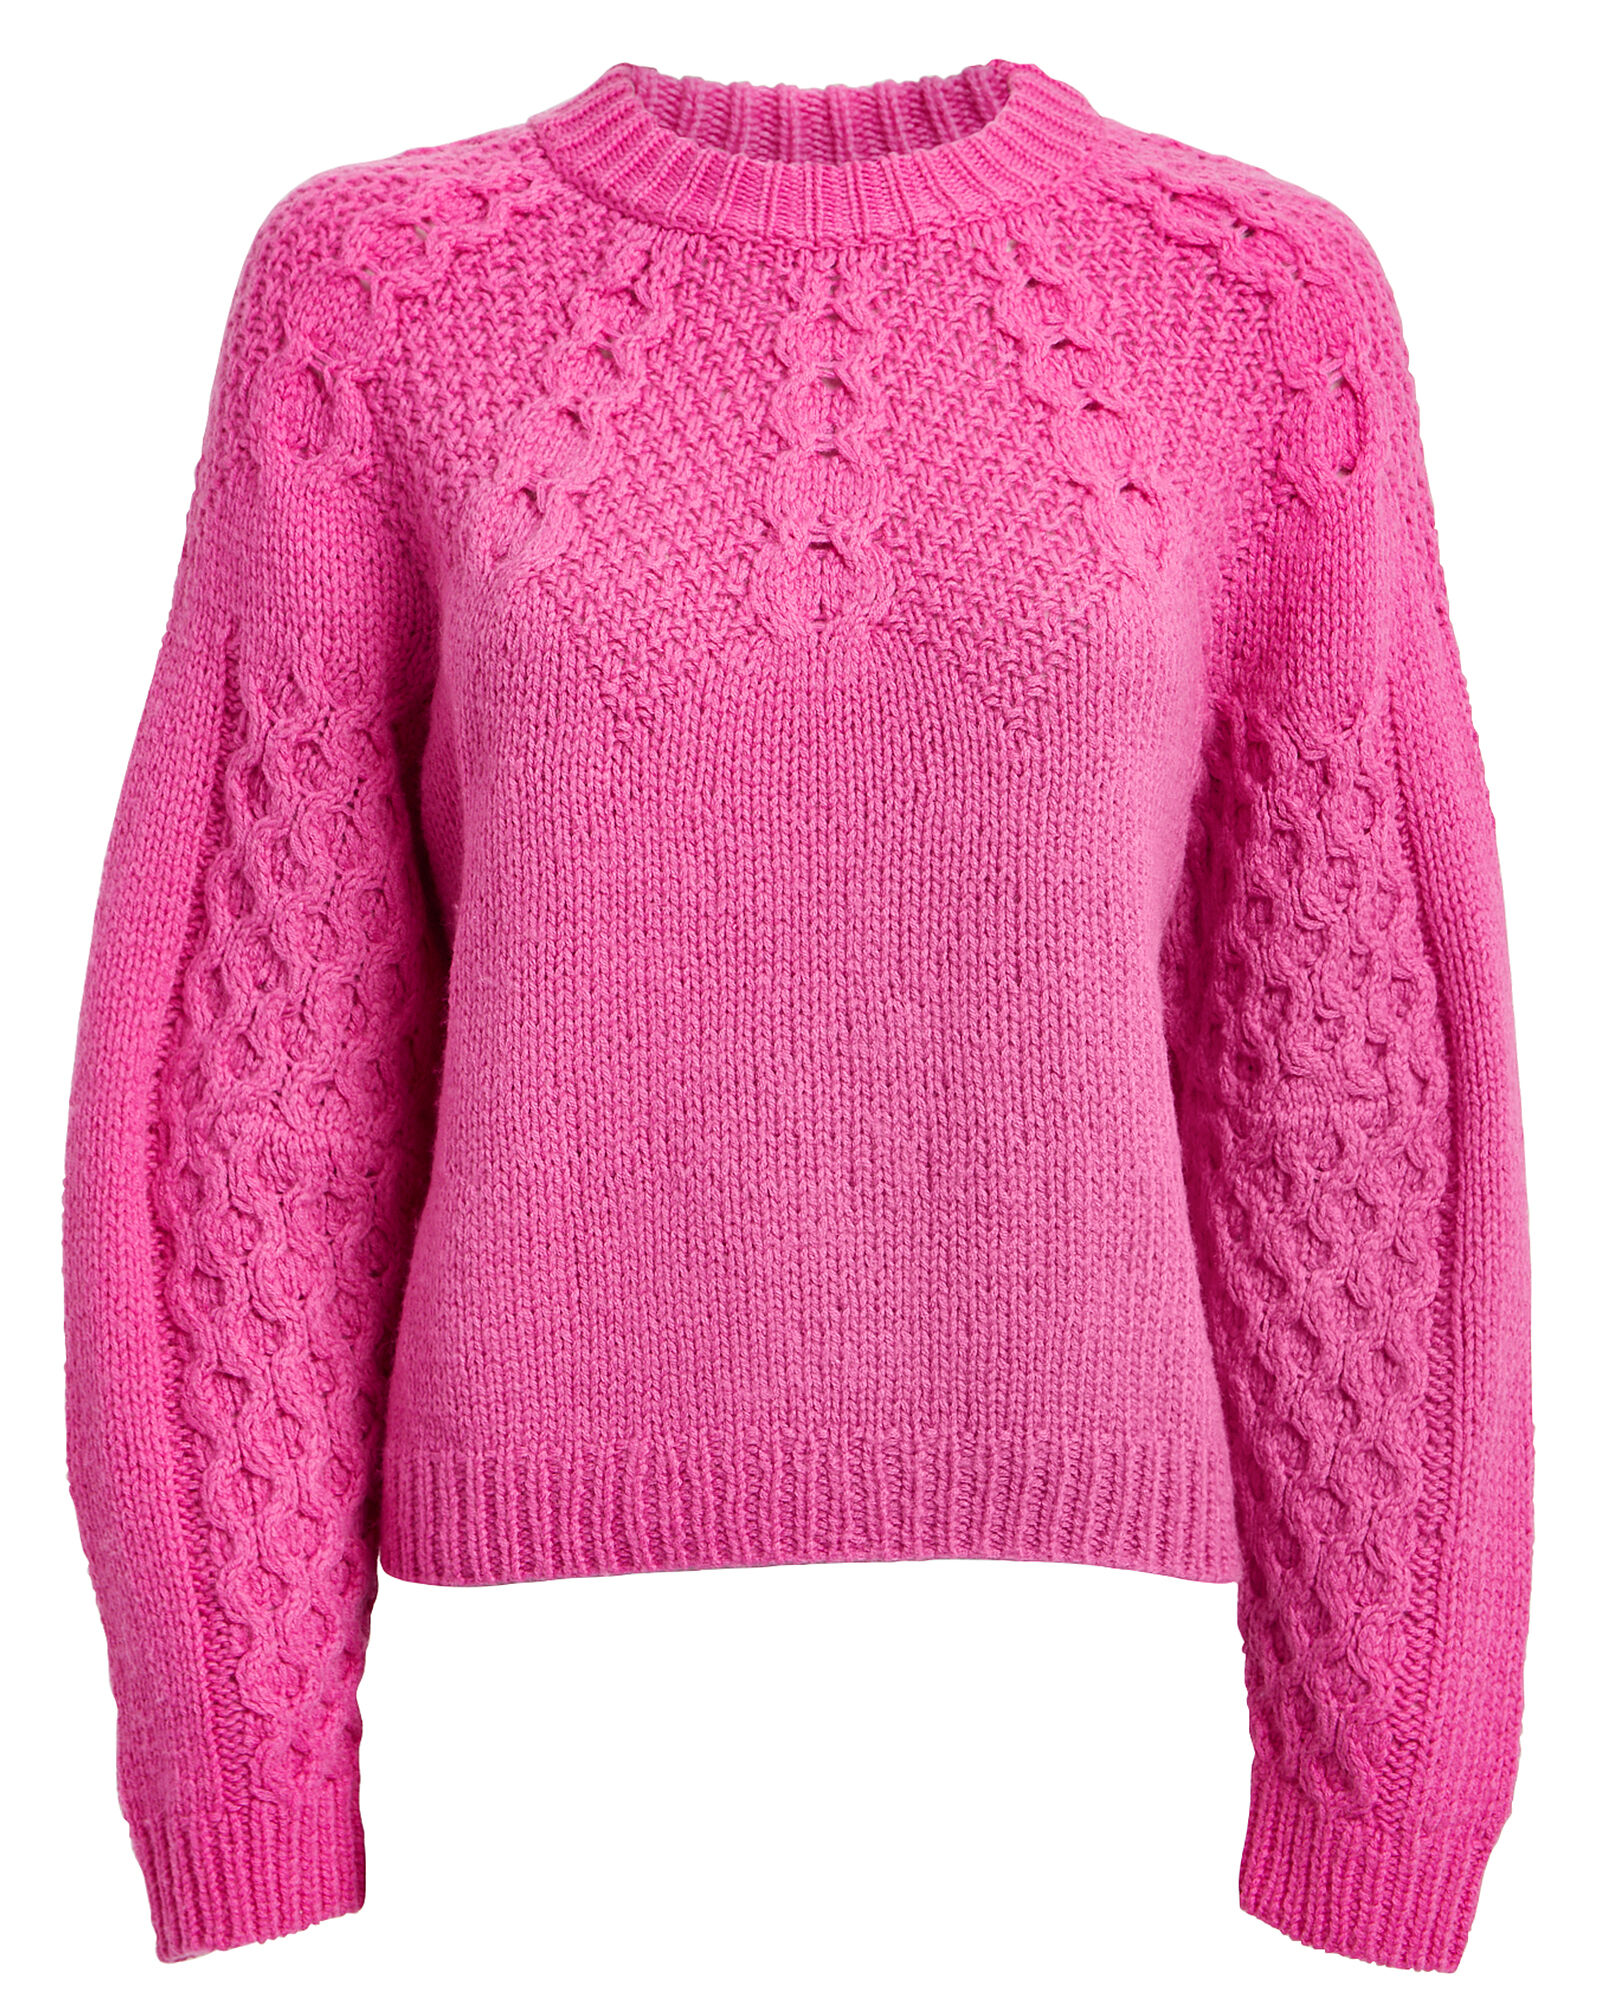 Bric Mohair Wool Honeycomb Sweater, PINK, hi-res